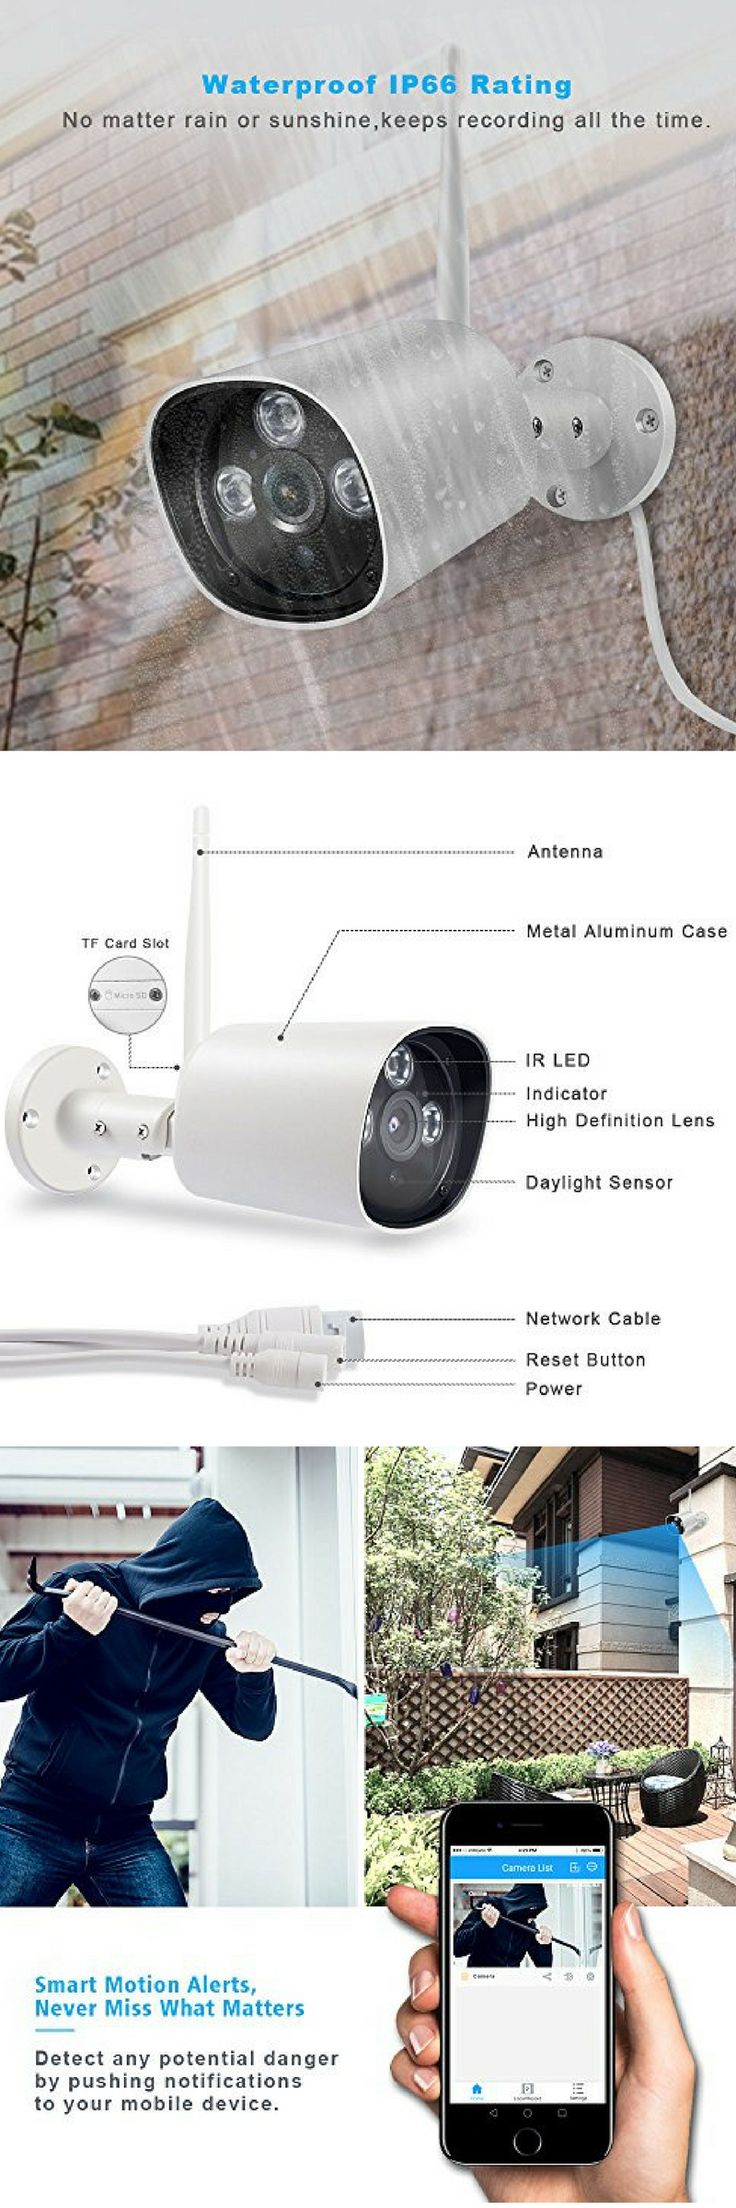 Wireless WiFi Bullet Outdoor IP Security Camera with Night Vision up to 66ft, Motion Detection,IP66 Waterproof, Support Timeline Playback, Turn On/Off Camera